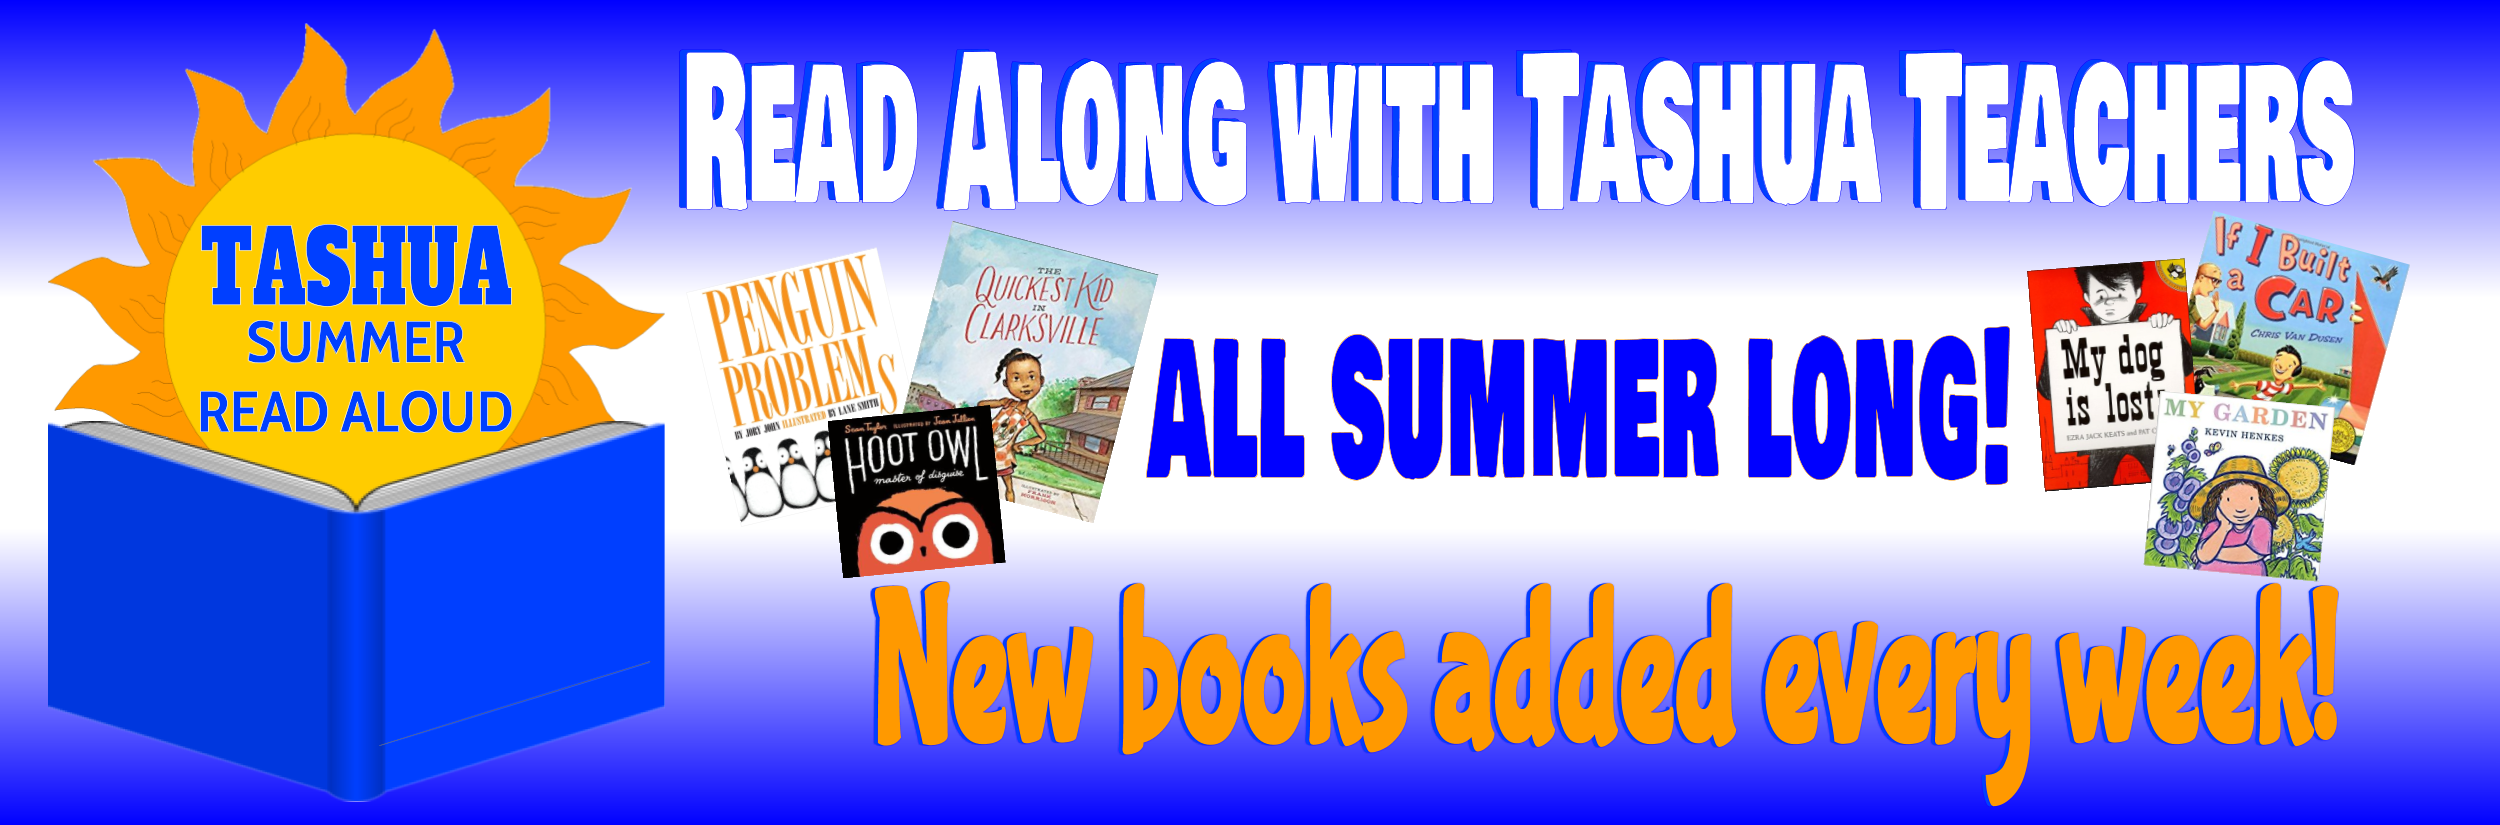 Summer Read Aloud 2018